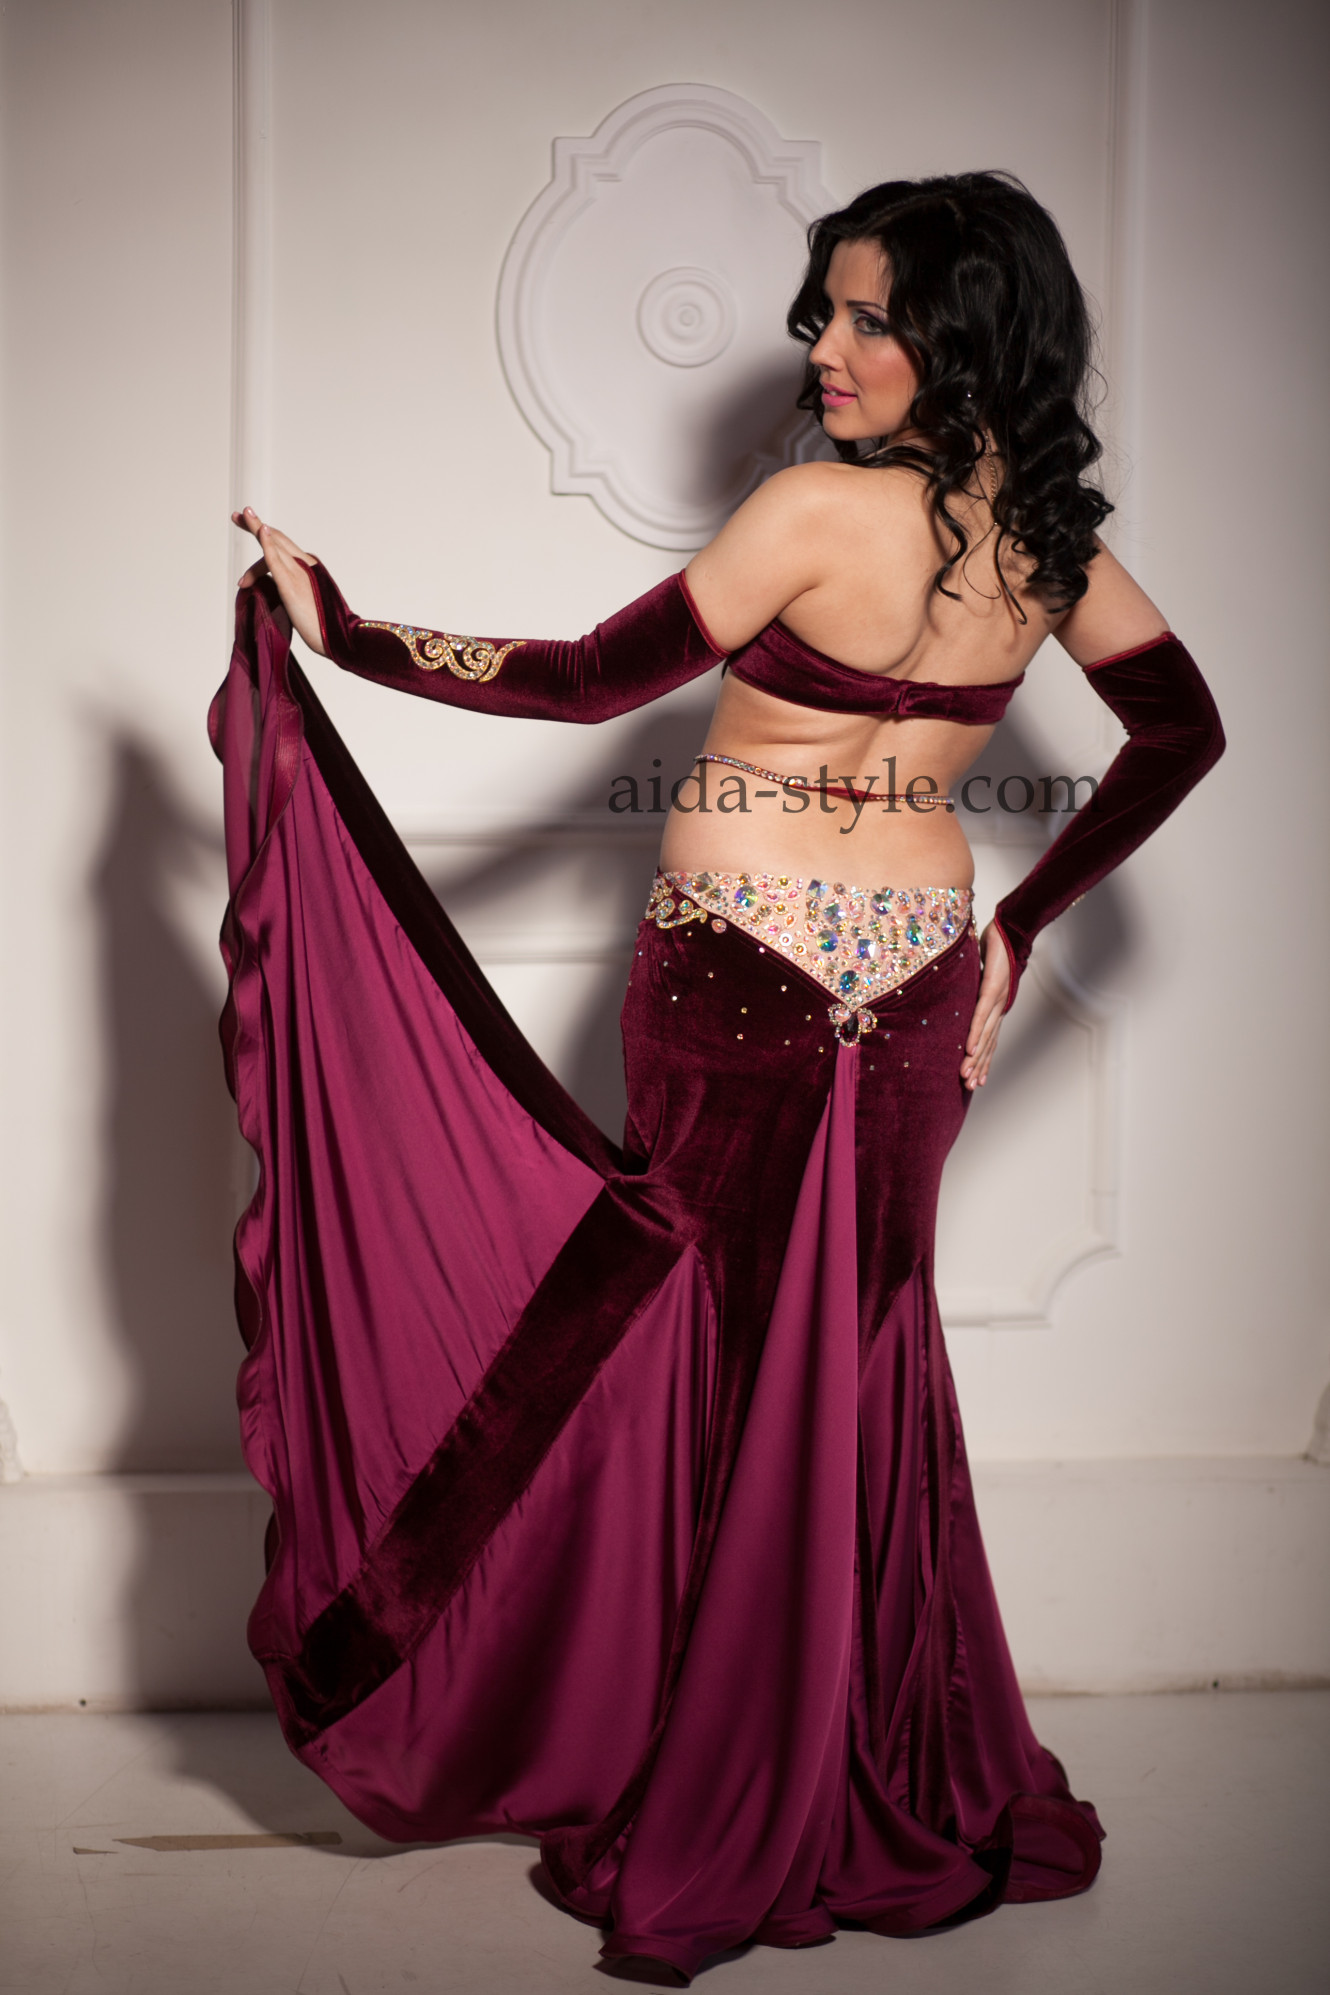 Professional belly dance dress made of two types of fabric. Has opera length gloves. Bra and belt are decorated with oriental patterns